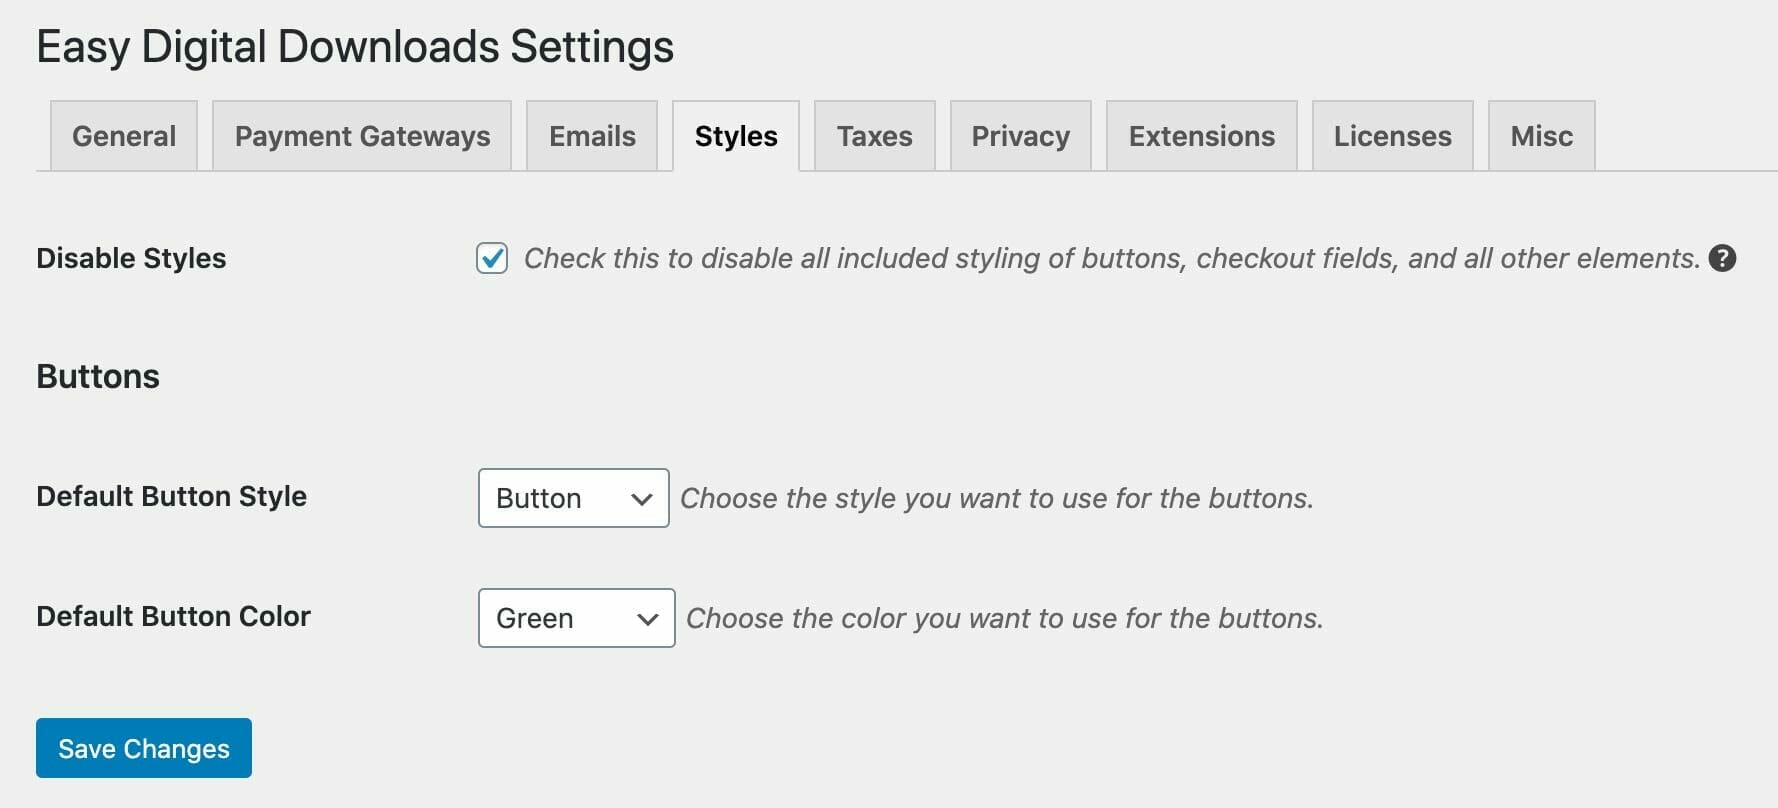 Disable Styles for Easy Digital Downloads